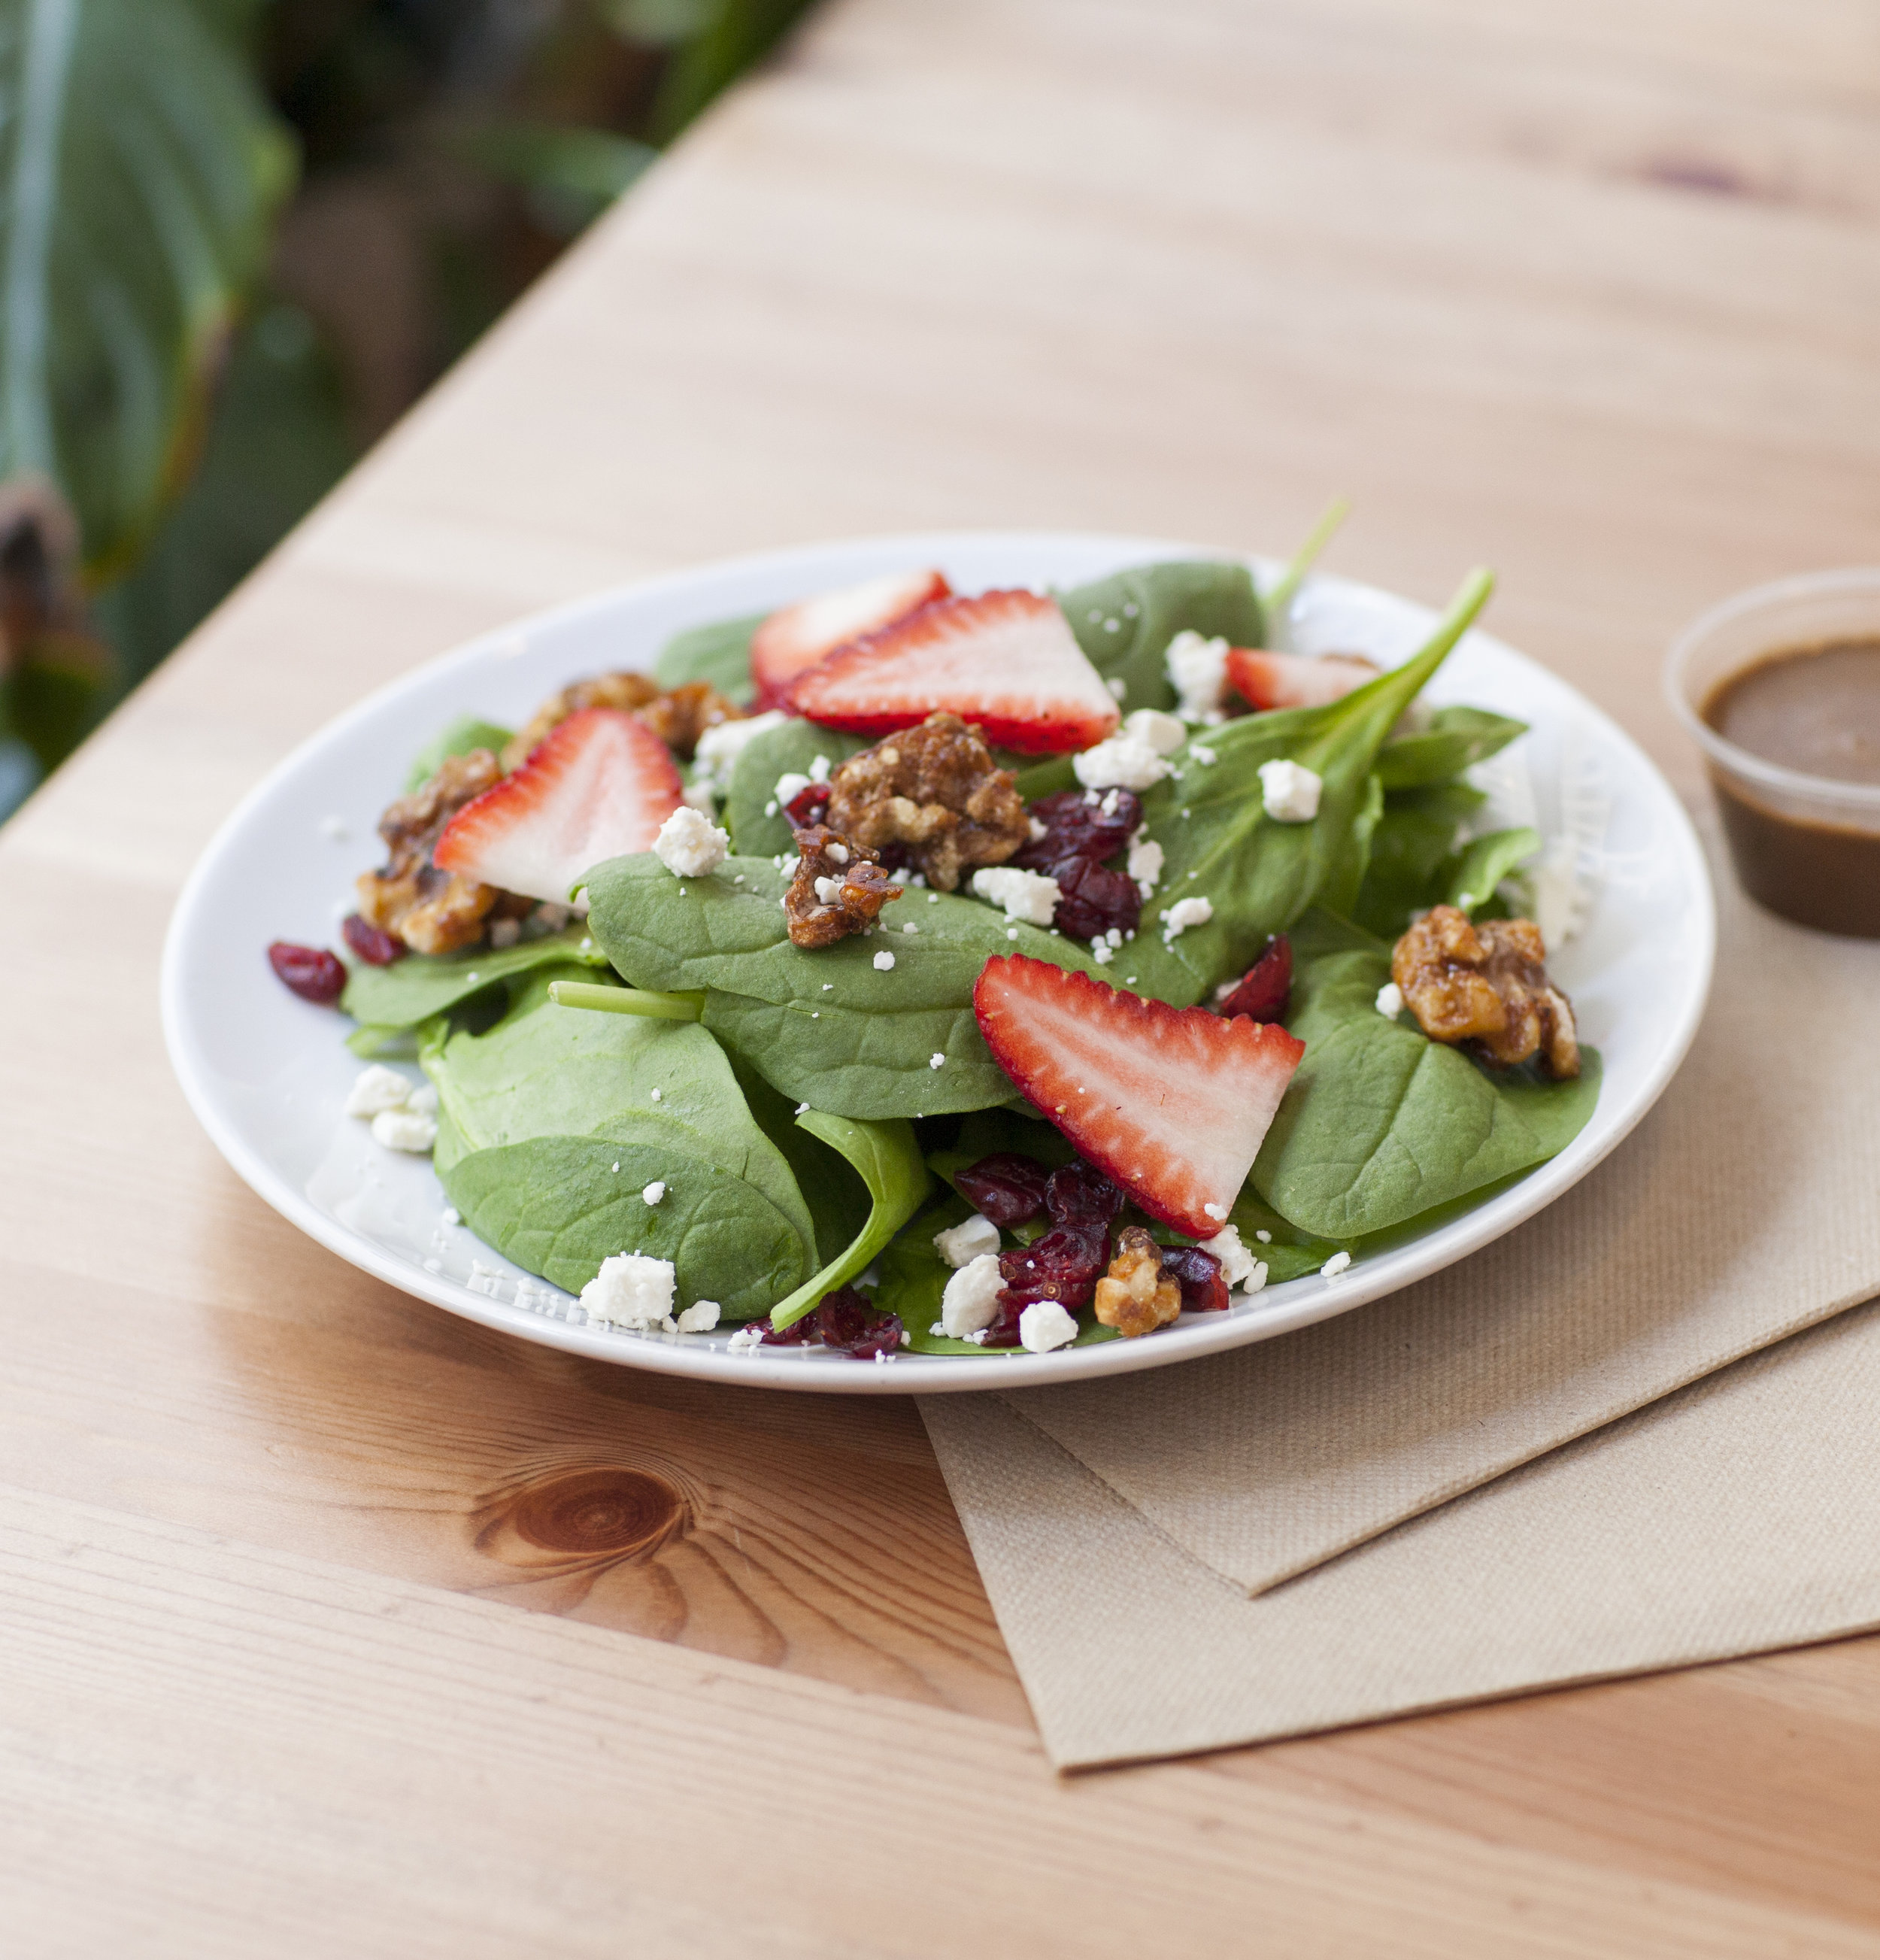 <style> .strawberry salad photography { display: none } </style>